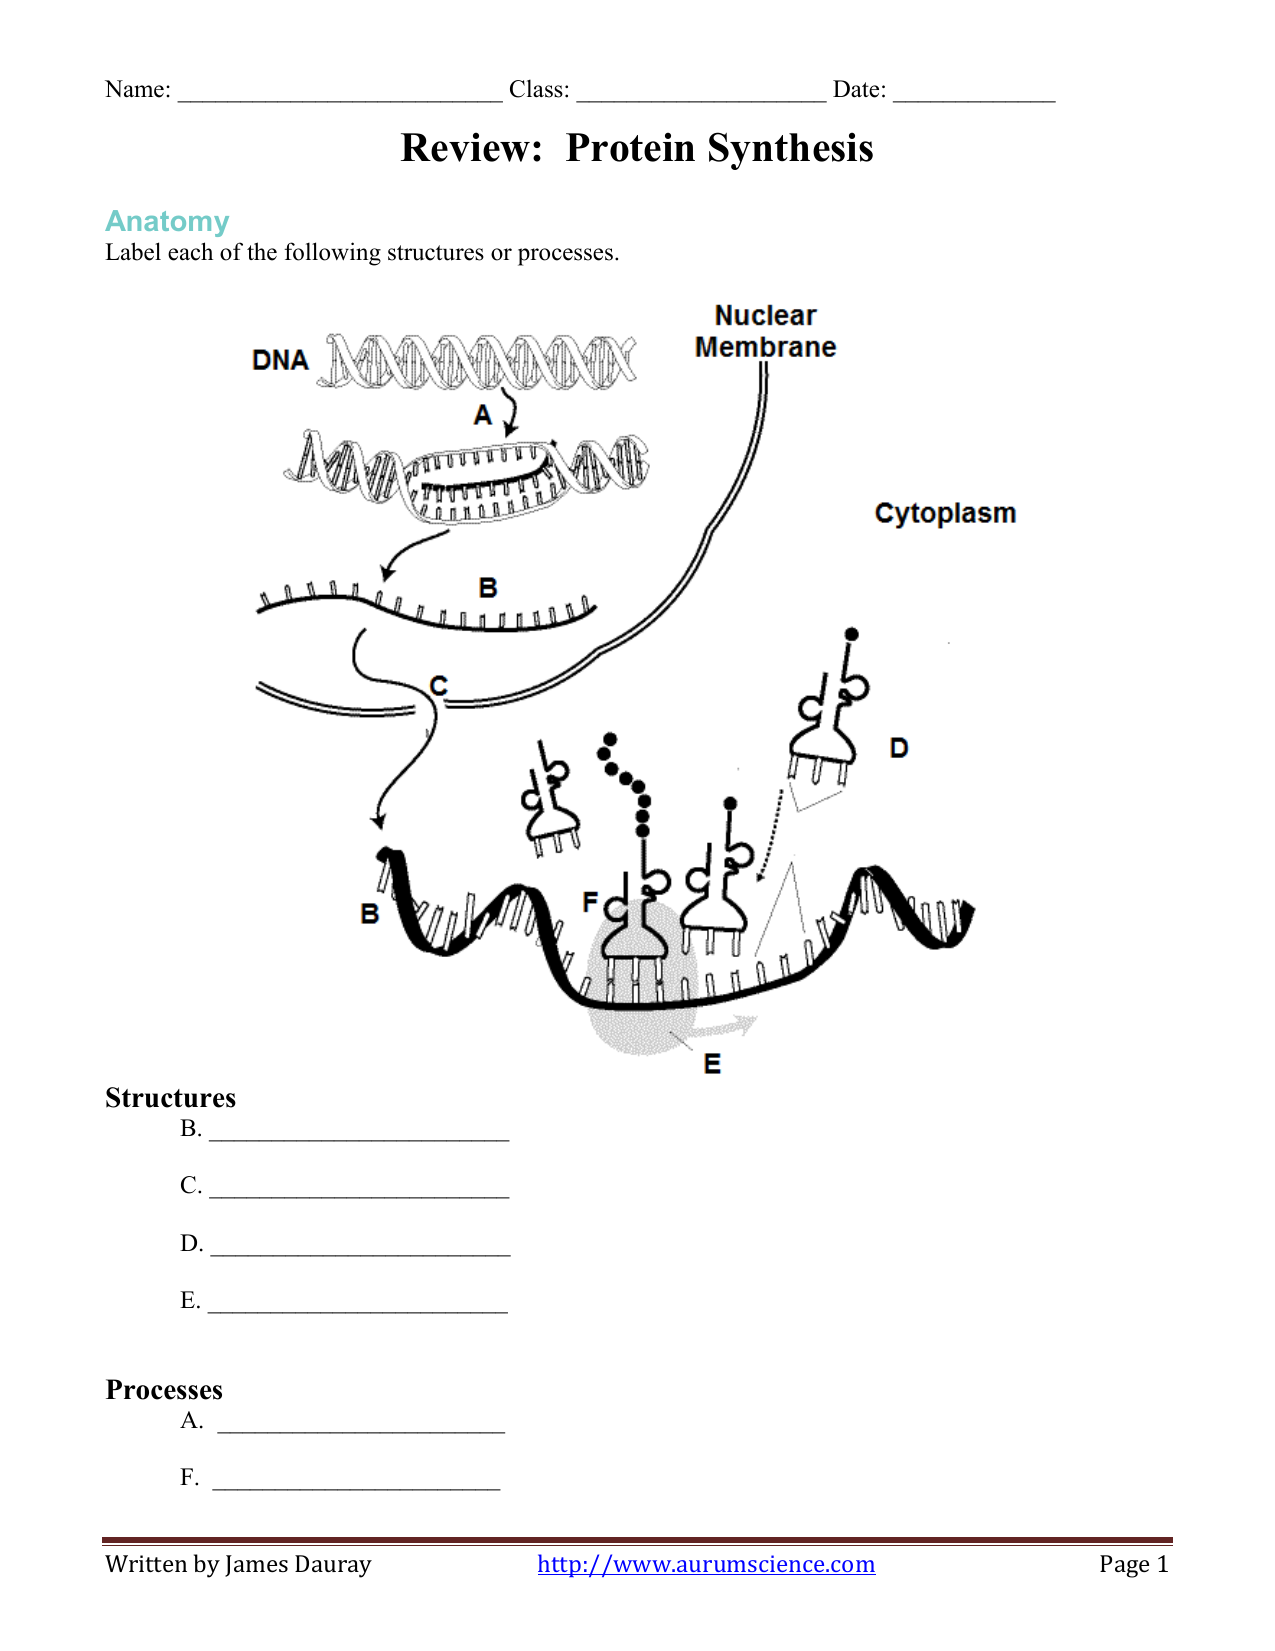 Review: Protein Synthesis